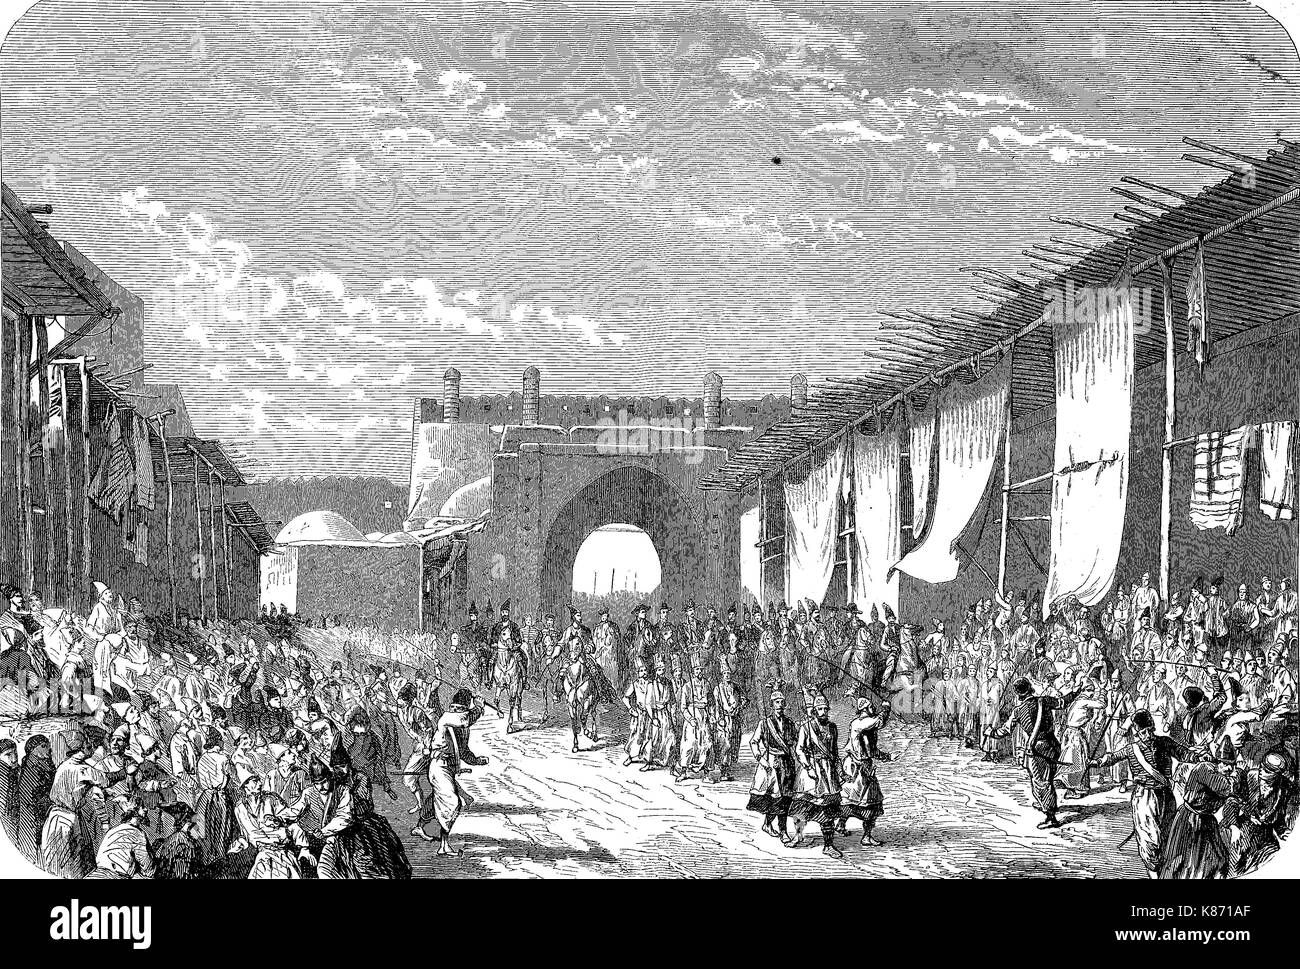 Tehran, Iran, arrival of the french envoy Bouree, Crimean War 1853 - 1856, Digital improved reproduction of an original - Stock Image